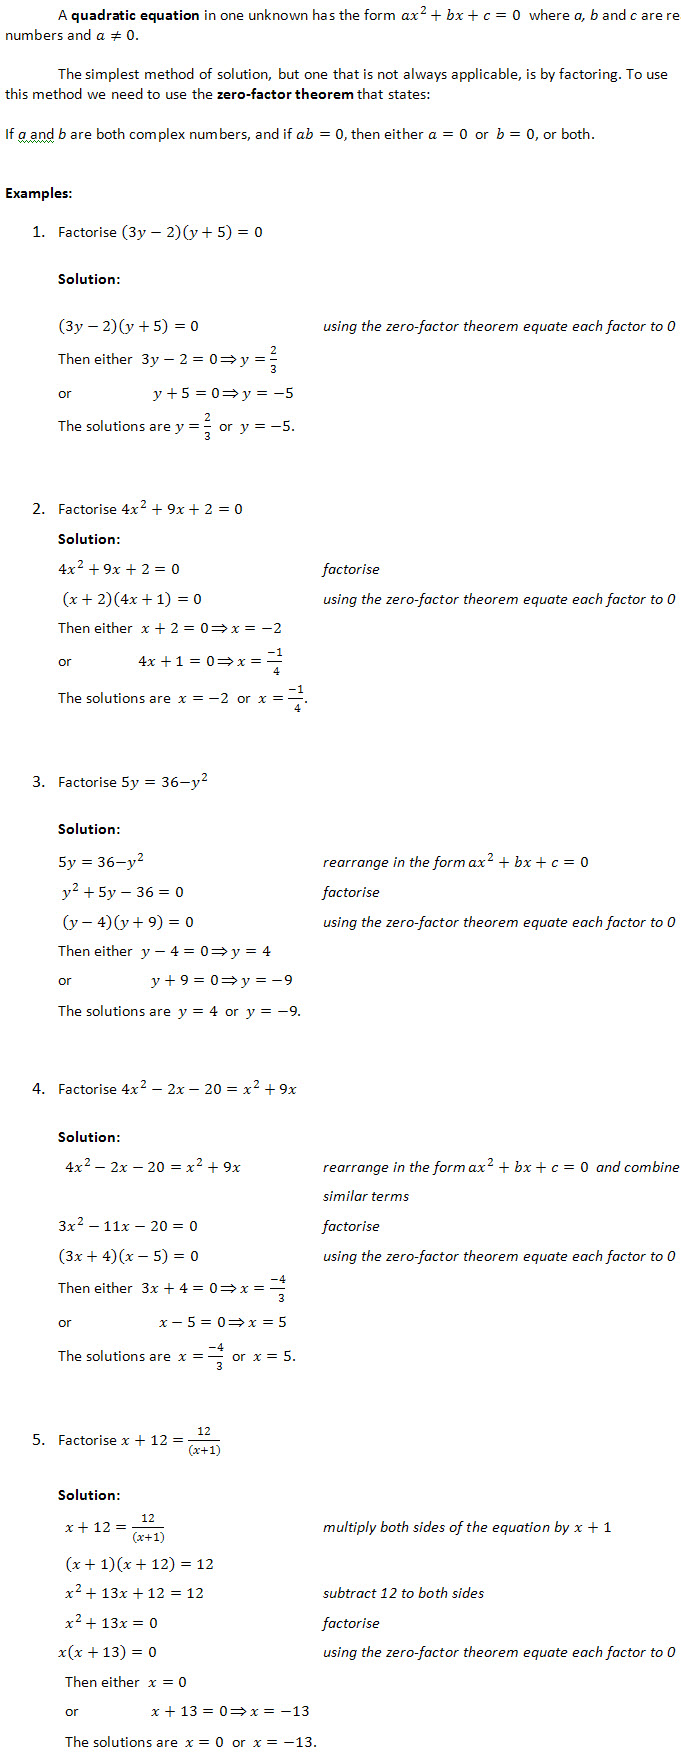 Factorising Quadratic Equations - Questions and Worked Solutions ...